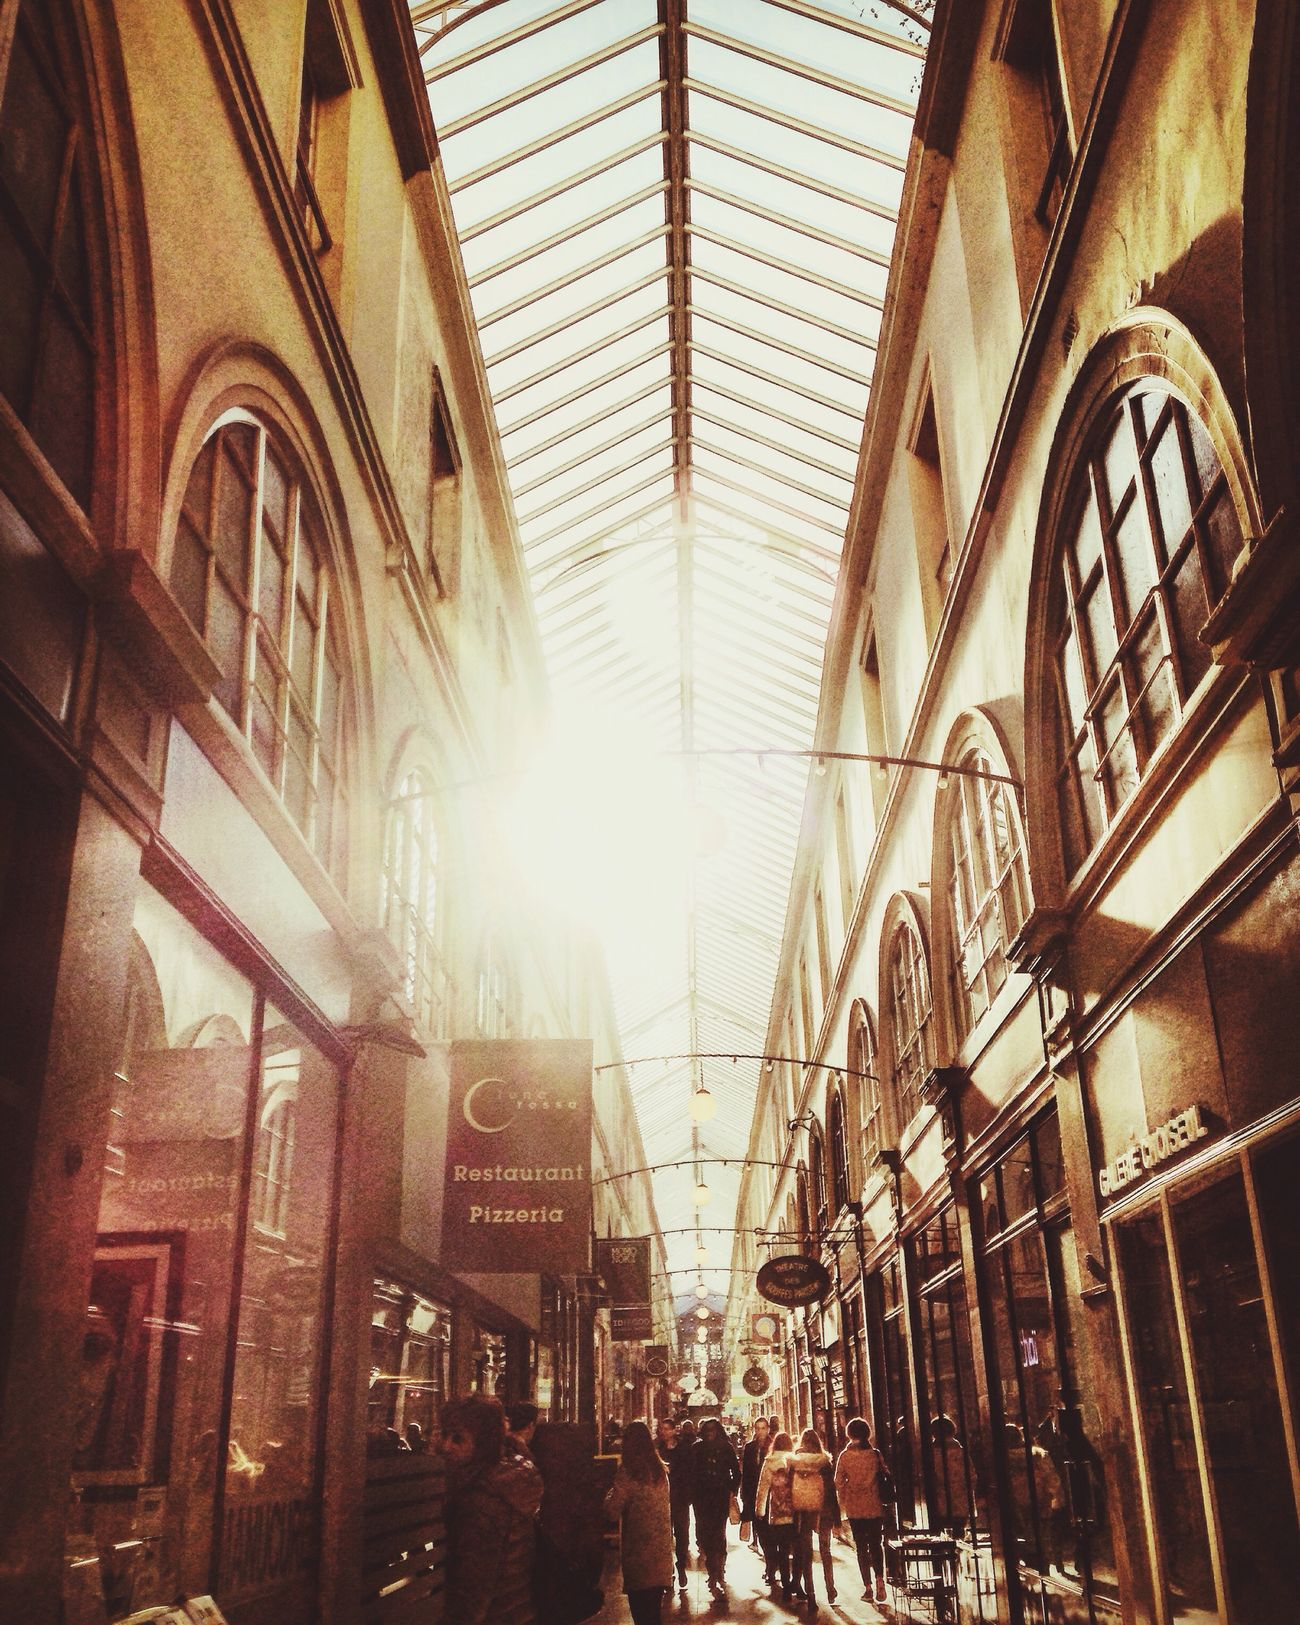 Paris Passage Passage Choiseul 2emearrondissement Pause Déjeuner Sunnyday☀️ Walking Around People City Life Italian In Paris First Eyeem Photo